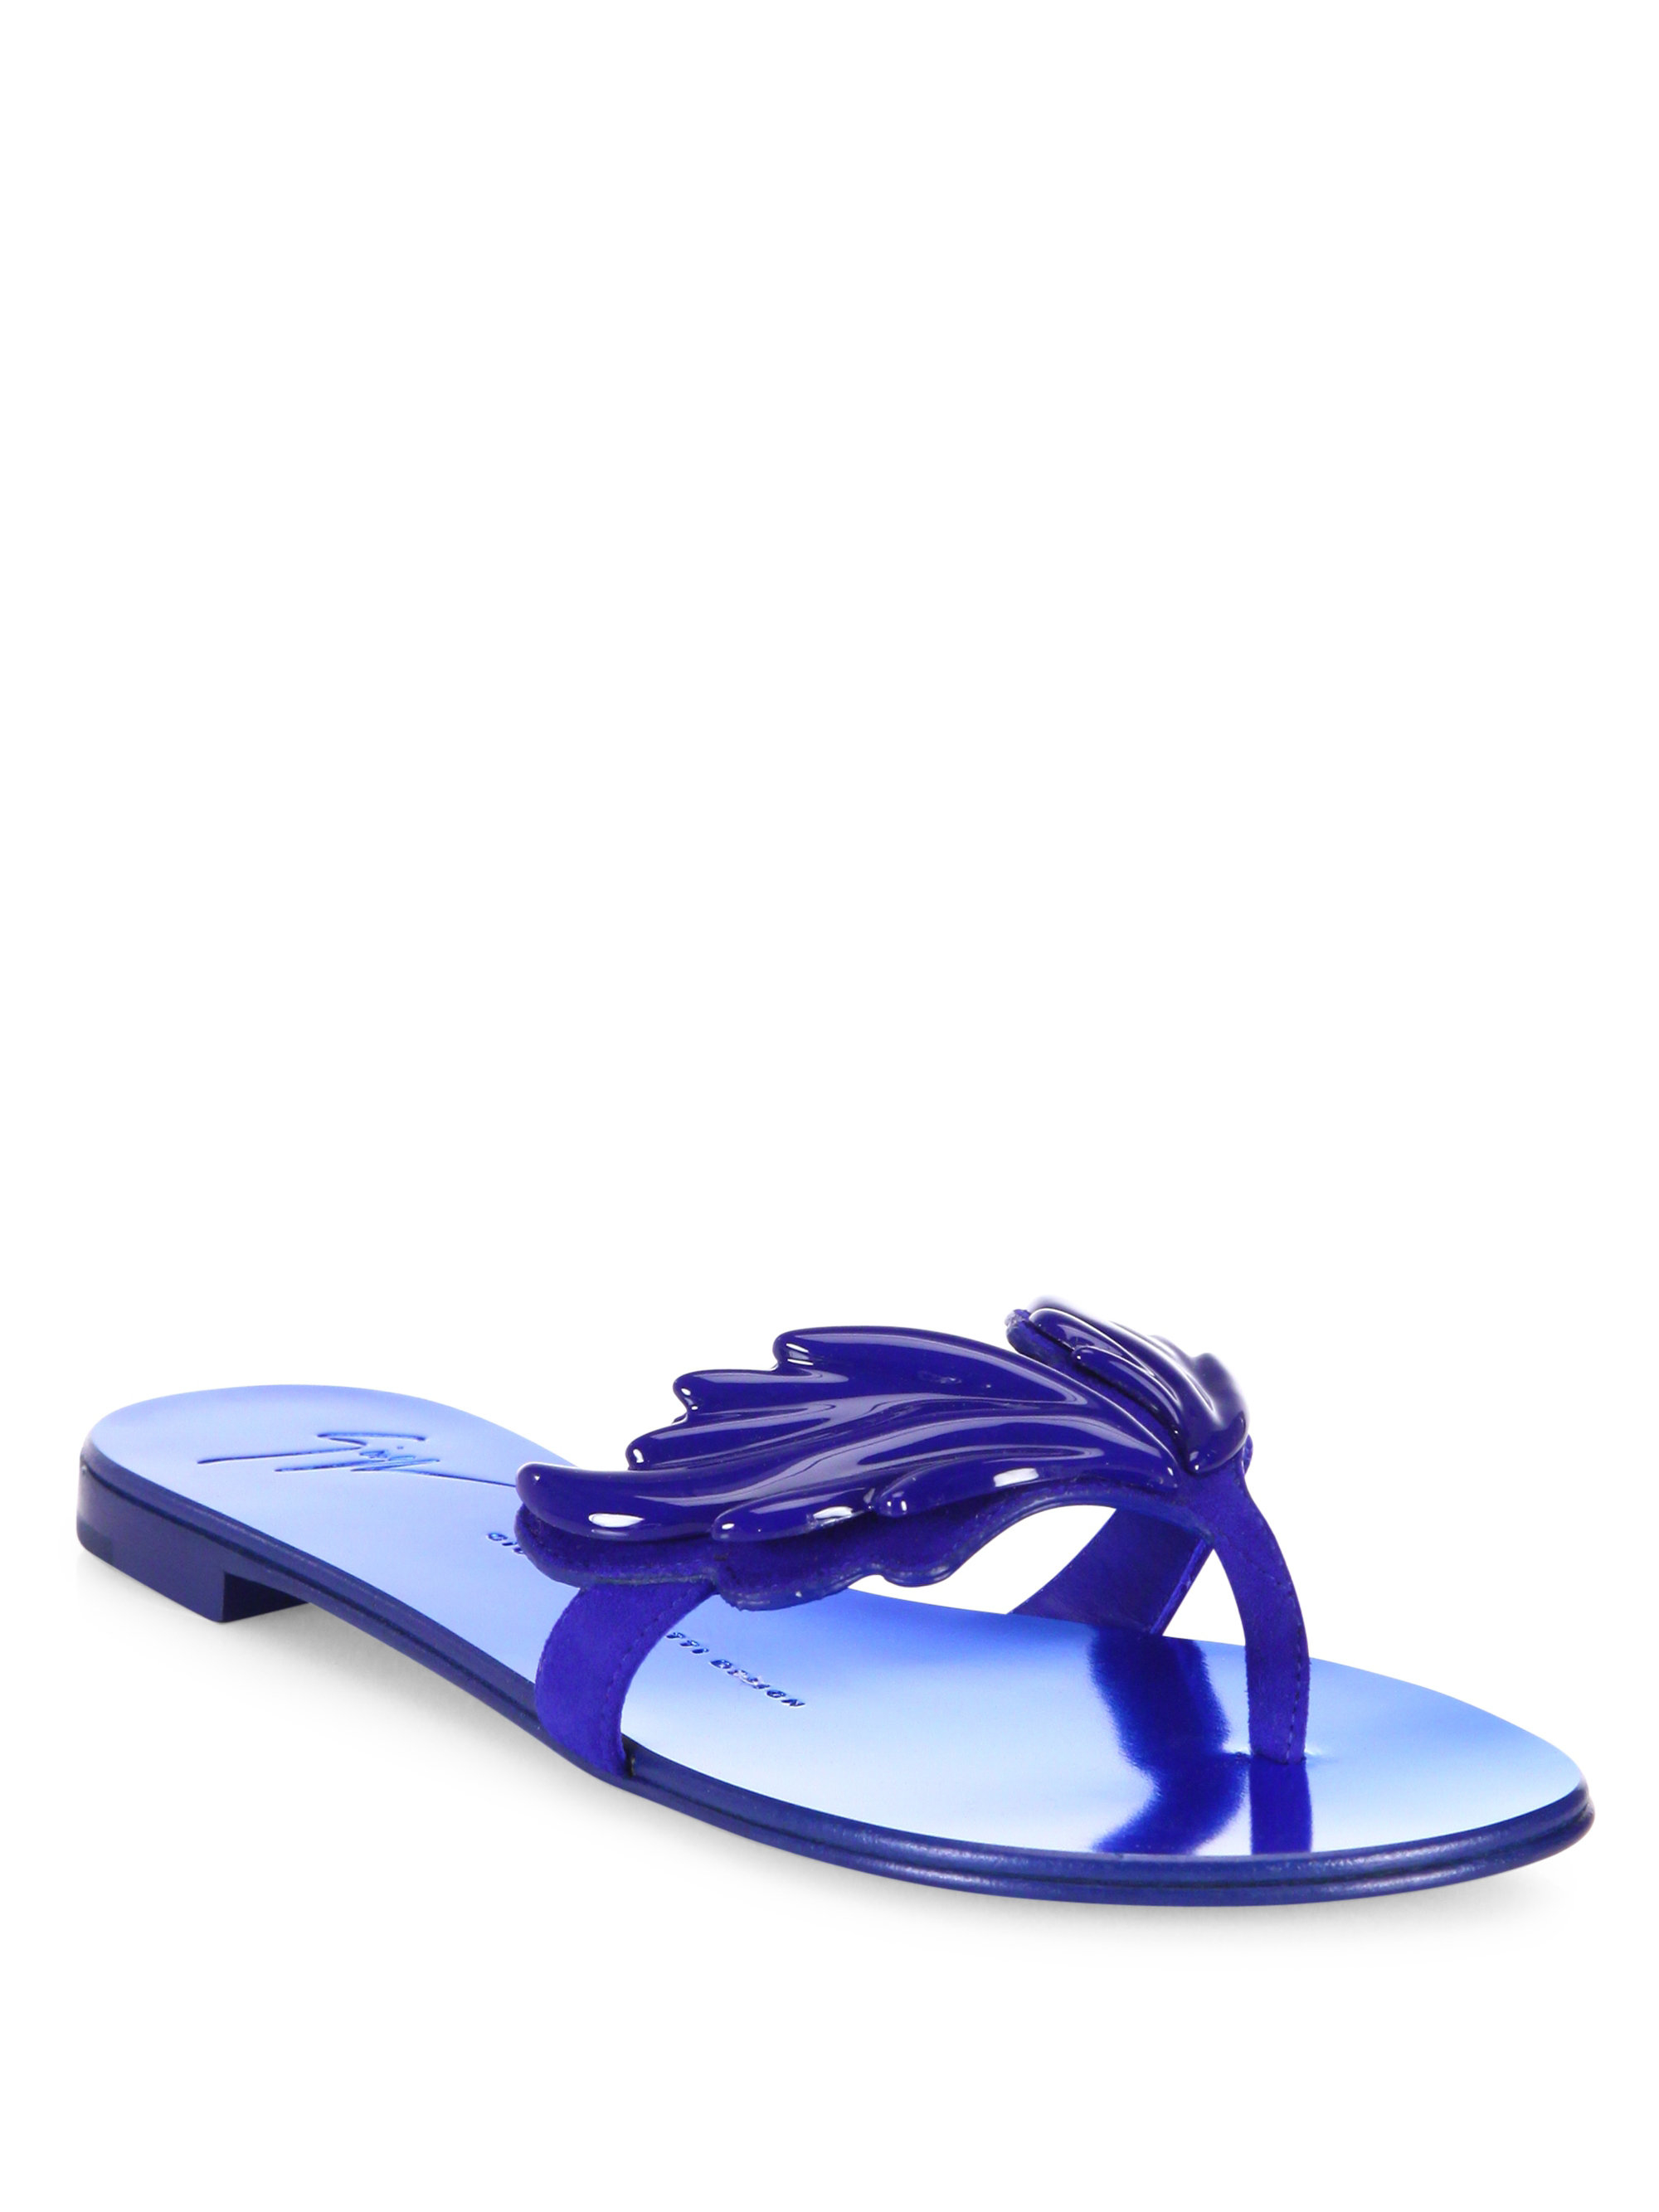 Giuseppe Zanotti Suede Wing Thong Sandals In Blue Lyst